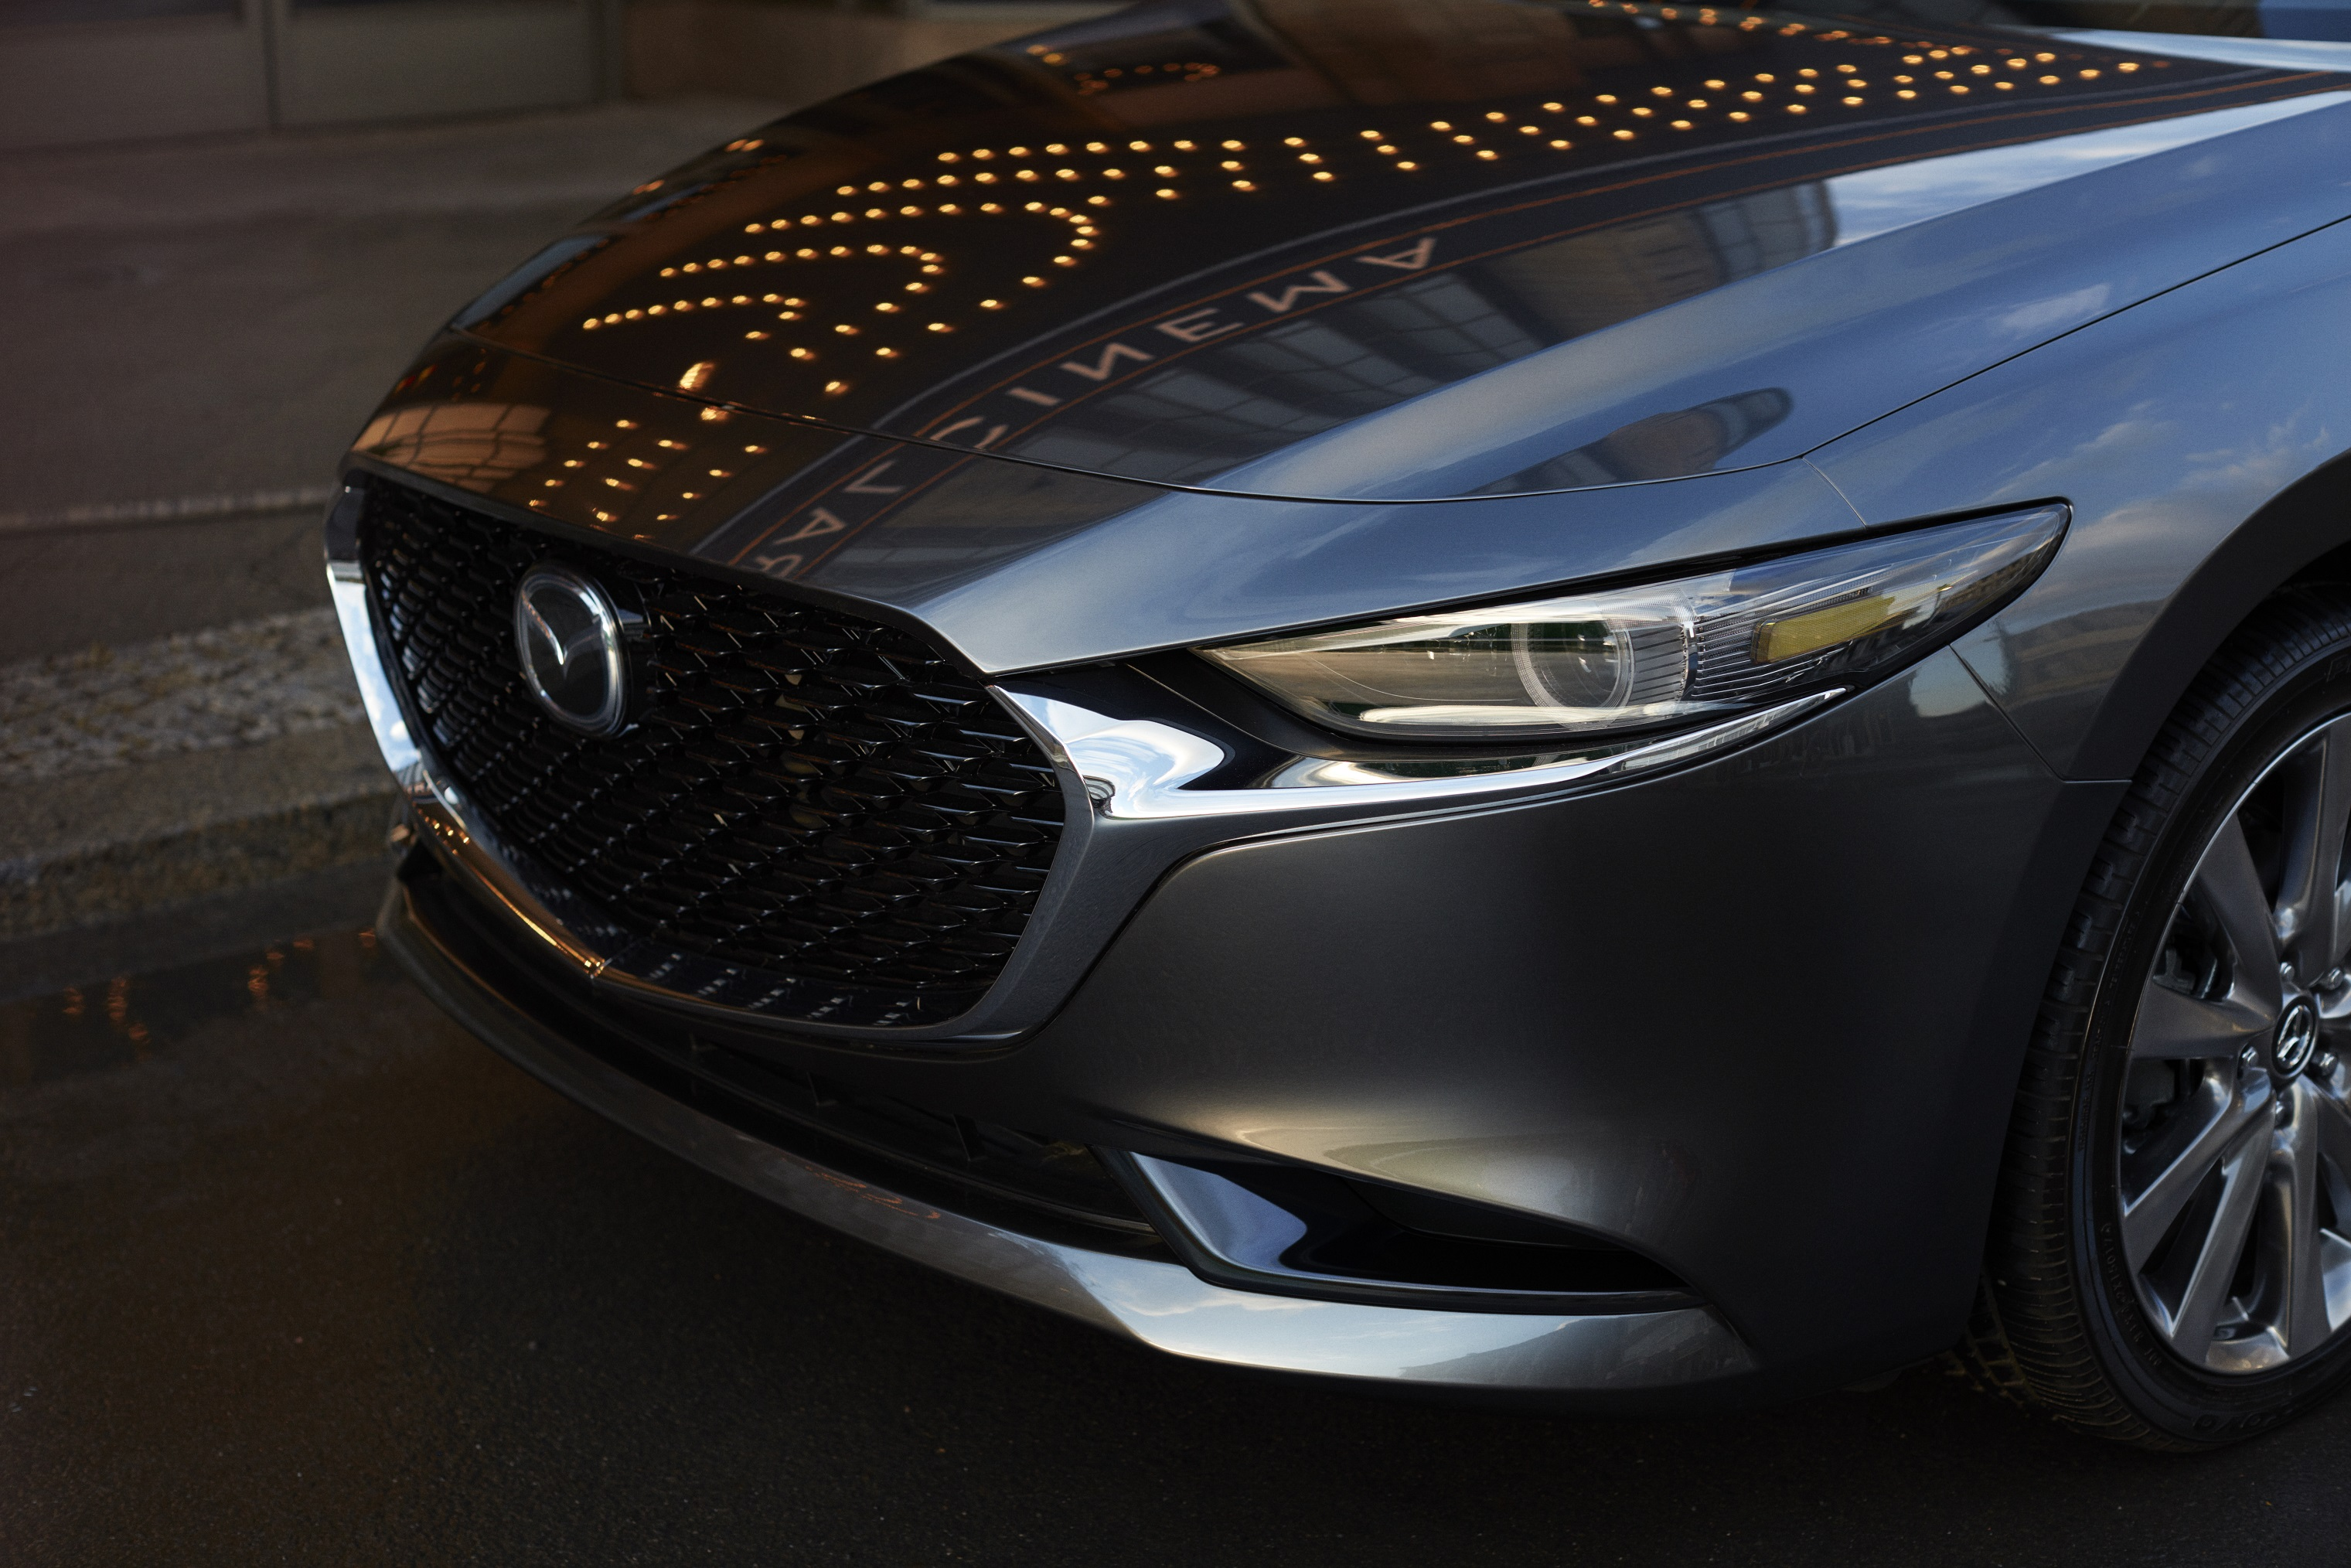 Photos Of Course The 2019 Mazda3 Looks Absolutely